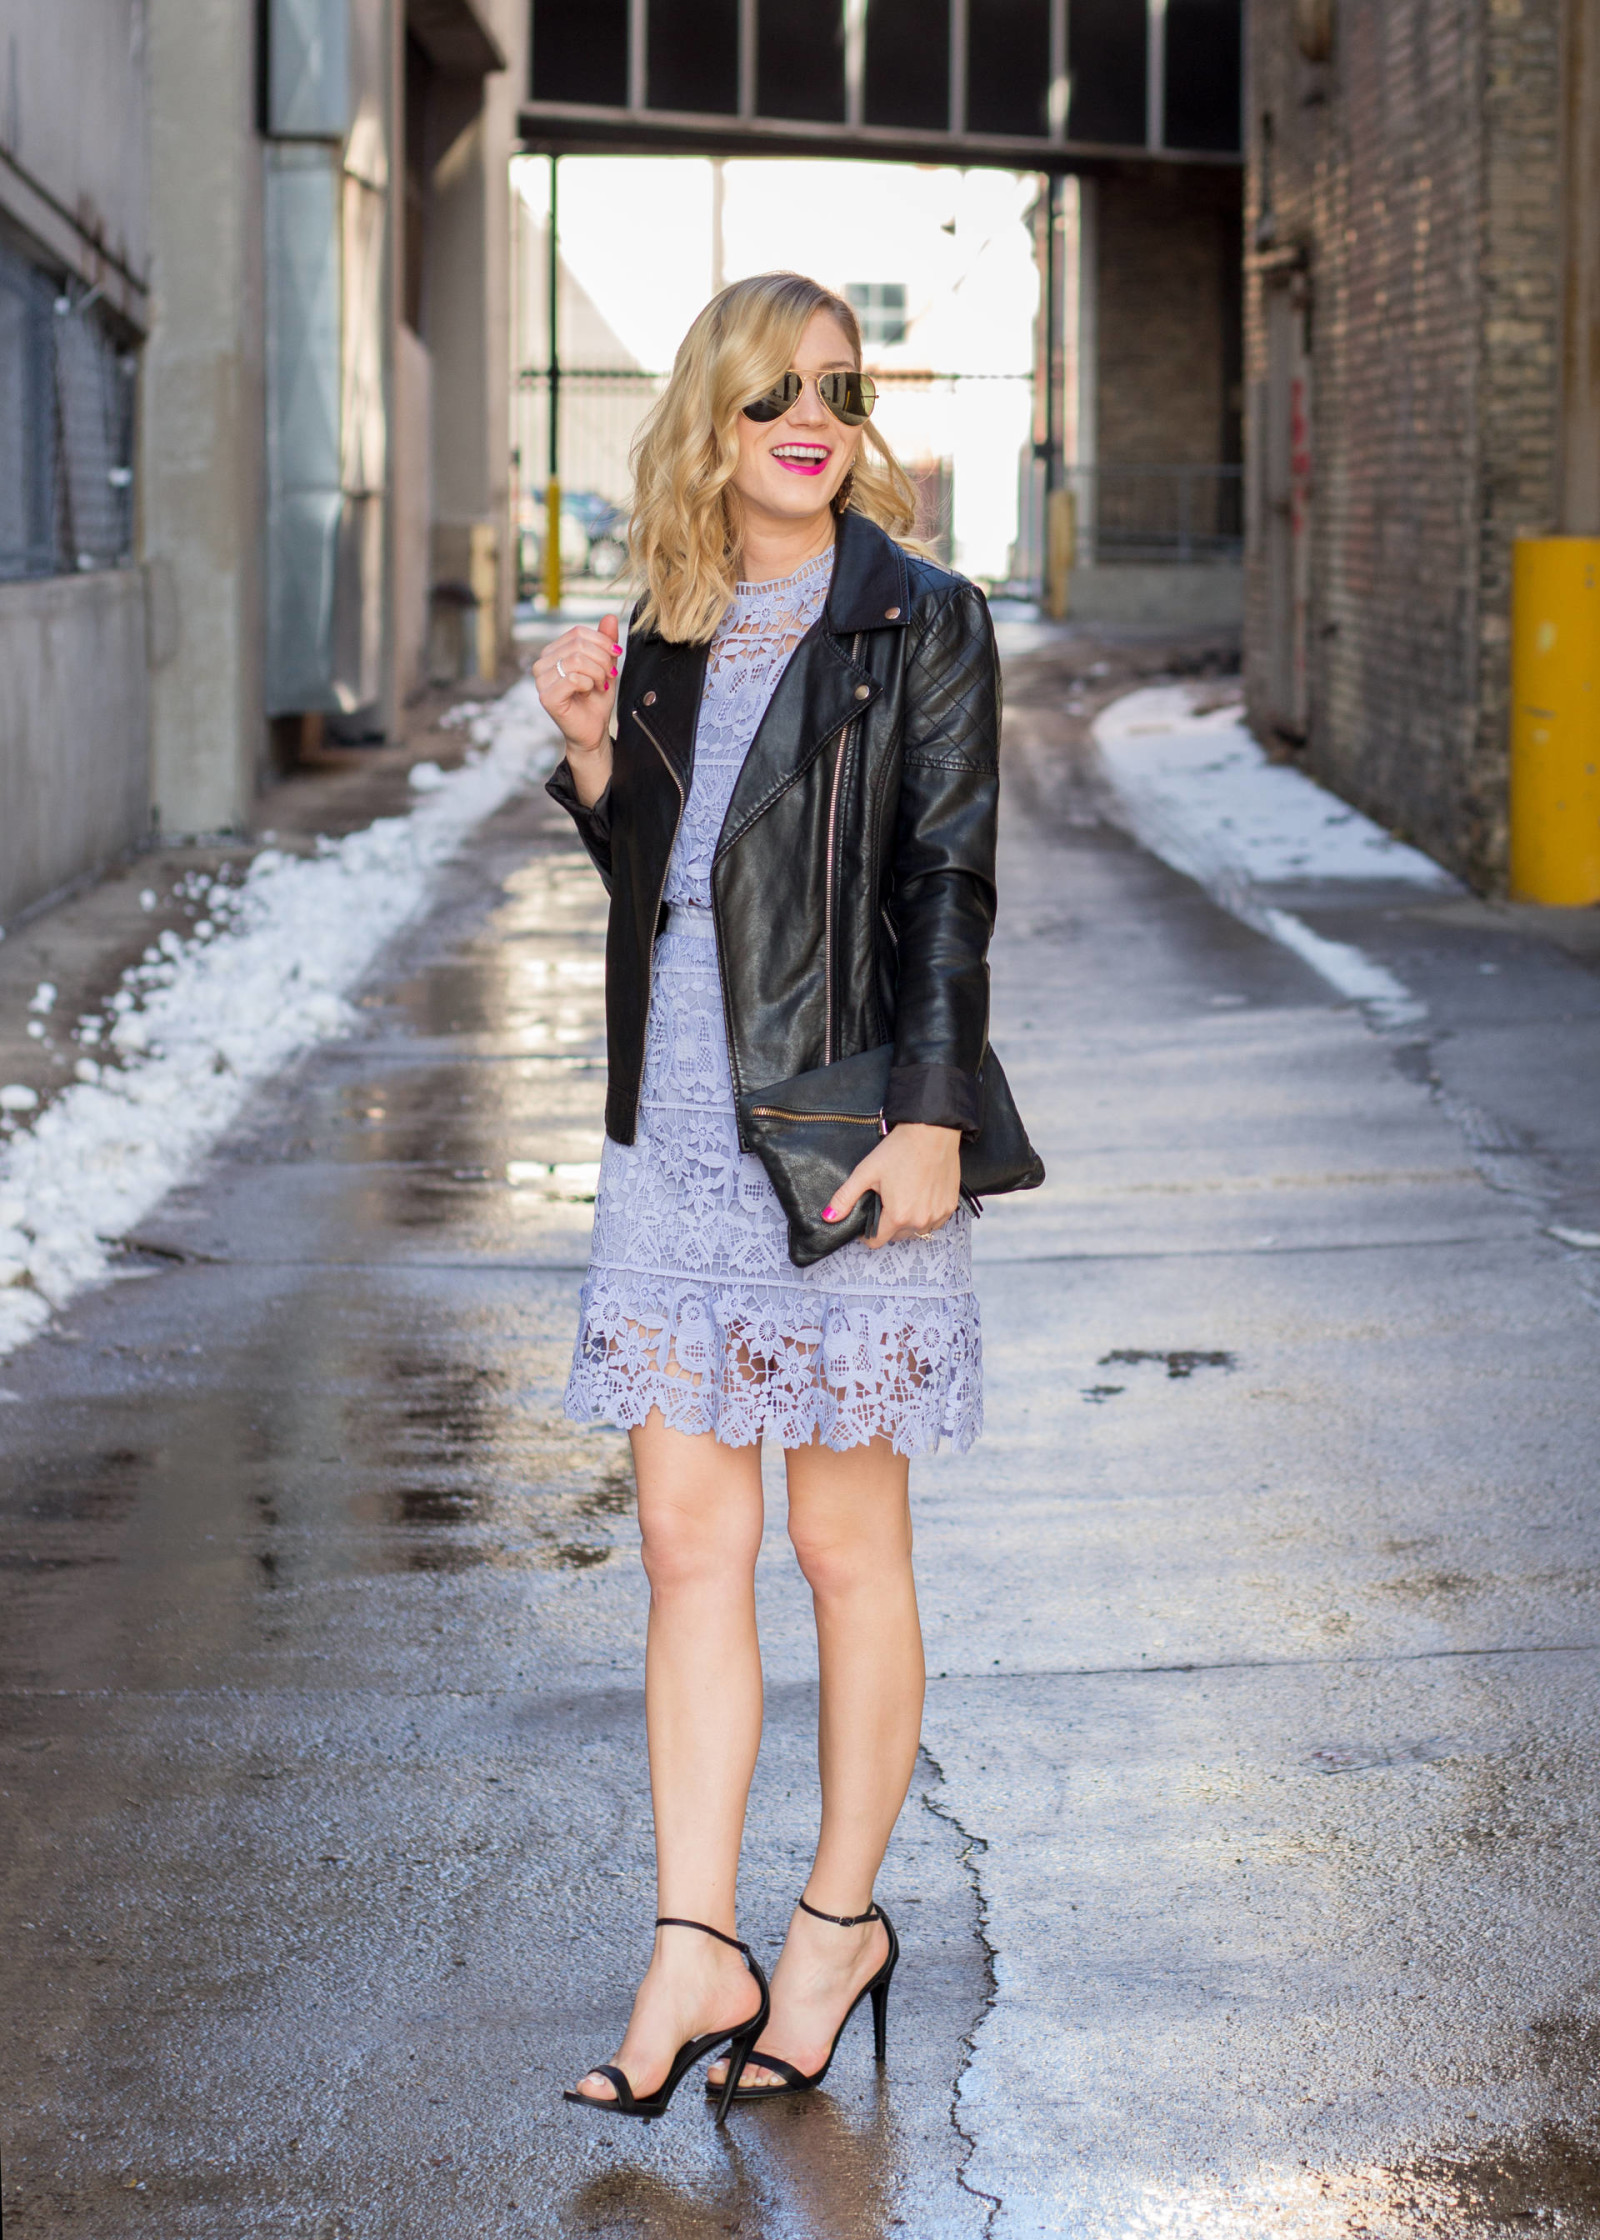 HOW TO WEAR YOUR SPRING DRESSES NOW.